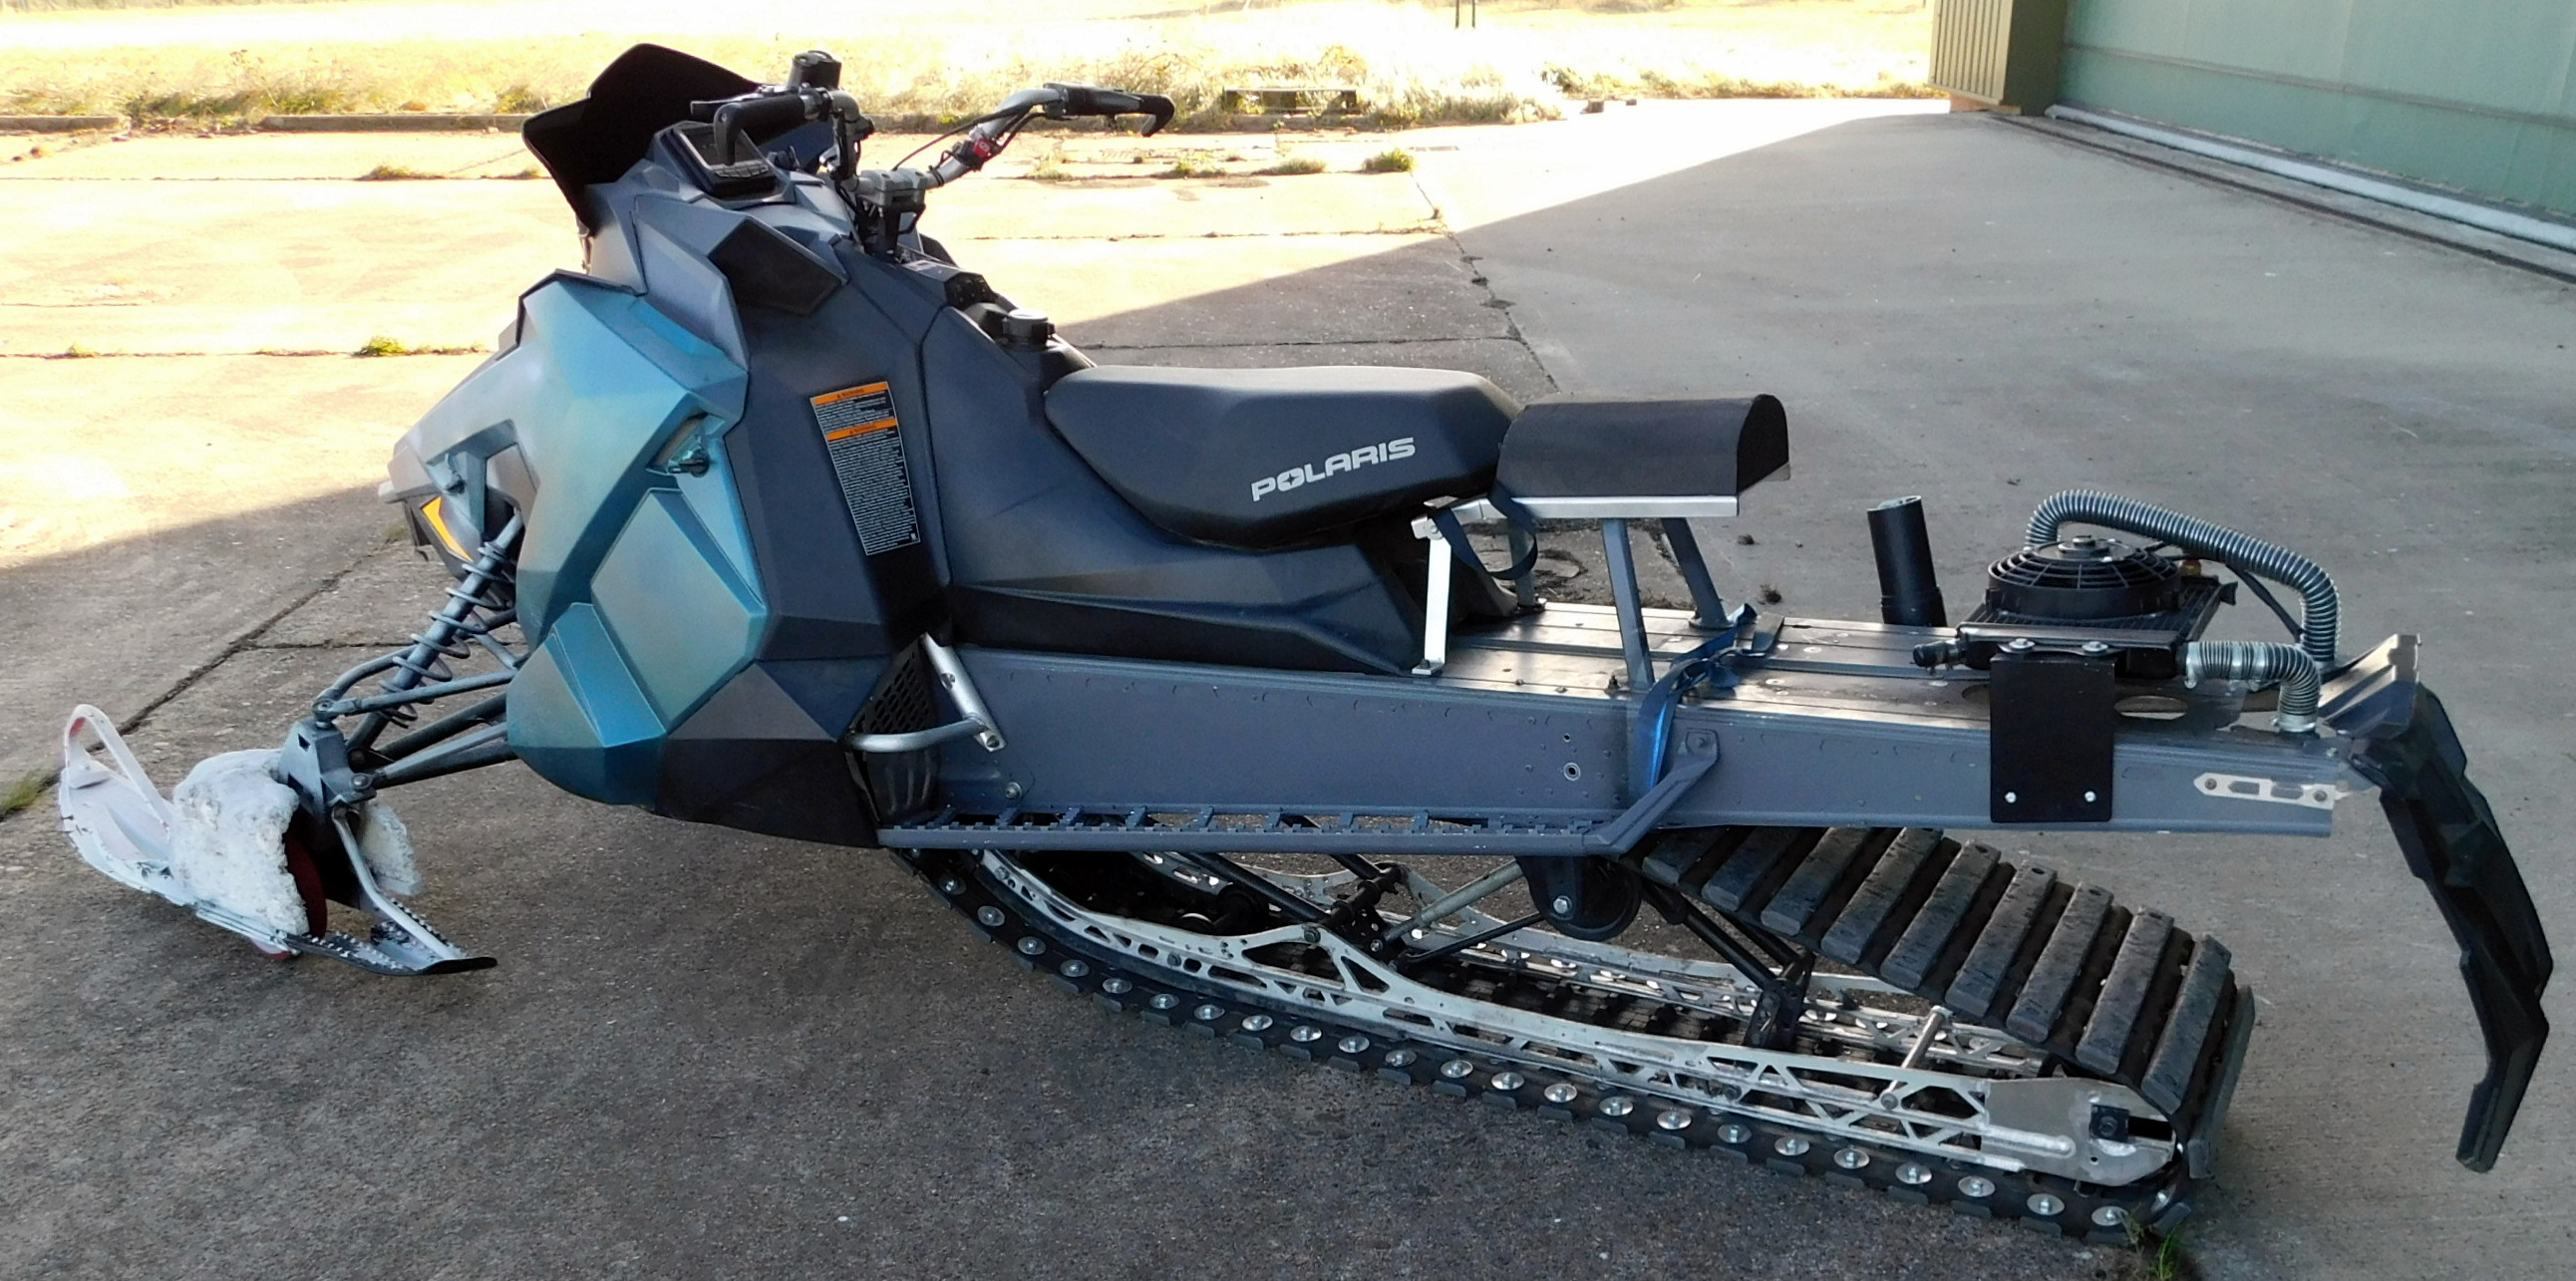 Lot 38 - Polaris Assault RMX 800 Snowmobile (Skidoo 2), Twin Cylinder 795cc Two Stroke Engine, Modified Track